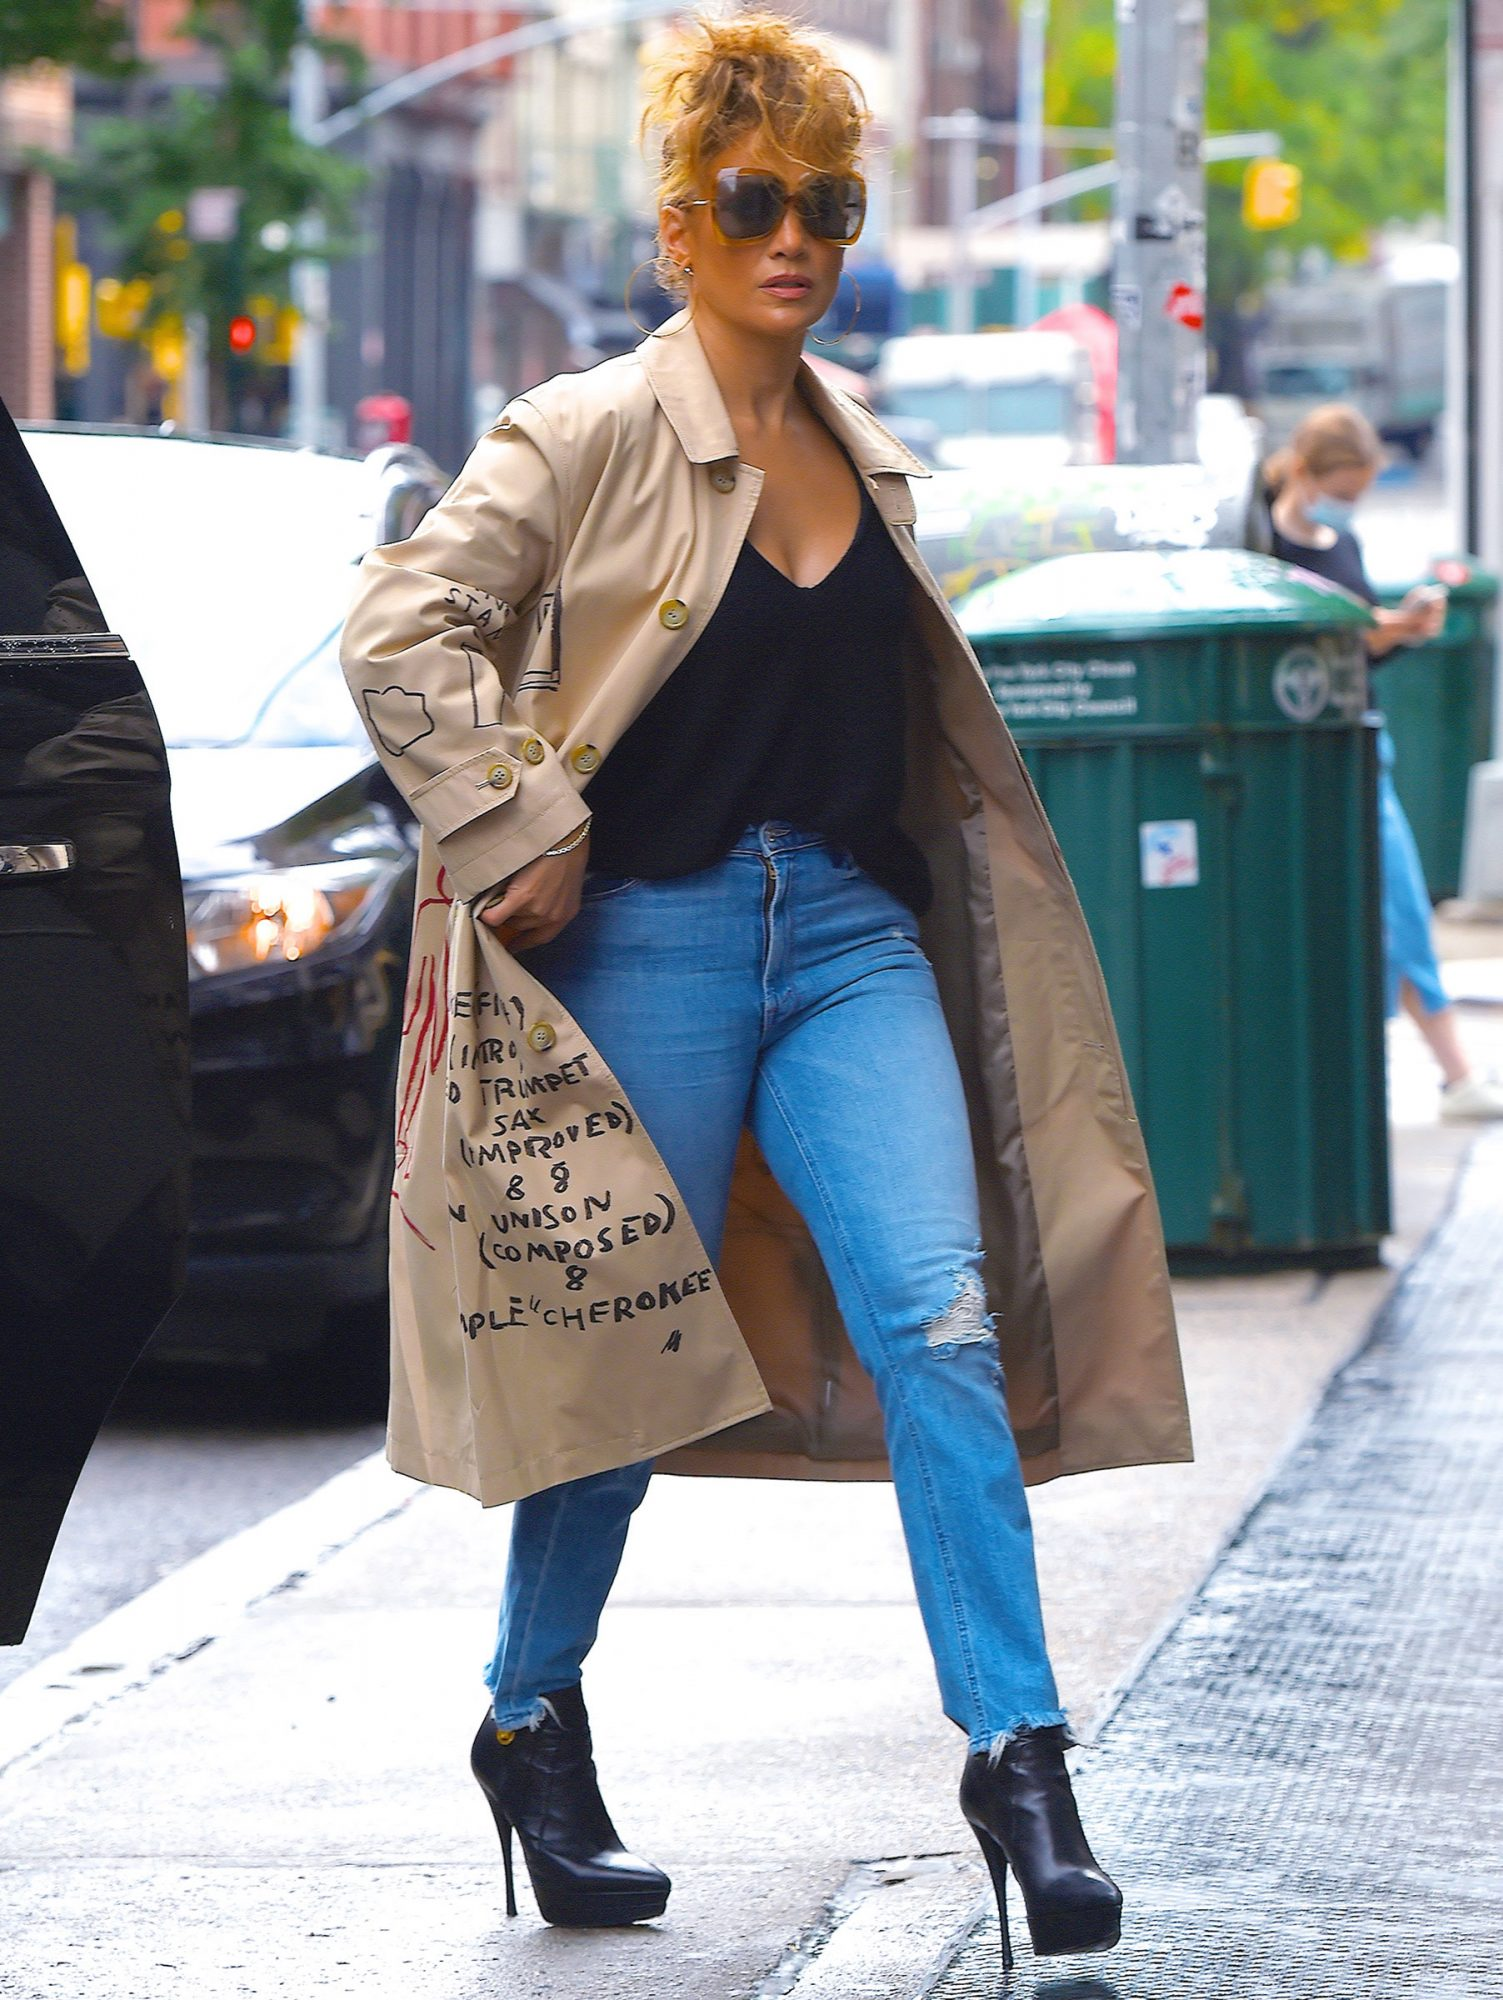 NEW YORK, NY - SEPTEMBER 29: Jennifer Lopez is seen in Manhattan on September 29, 2020 in New York City